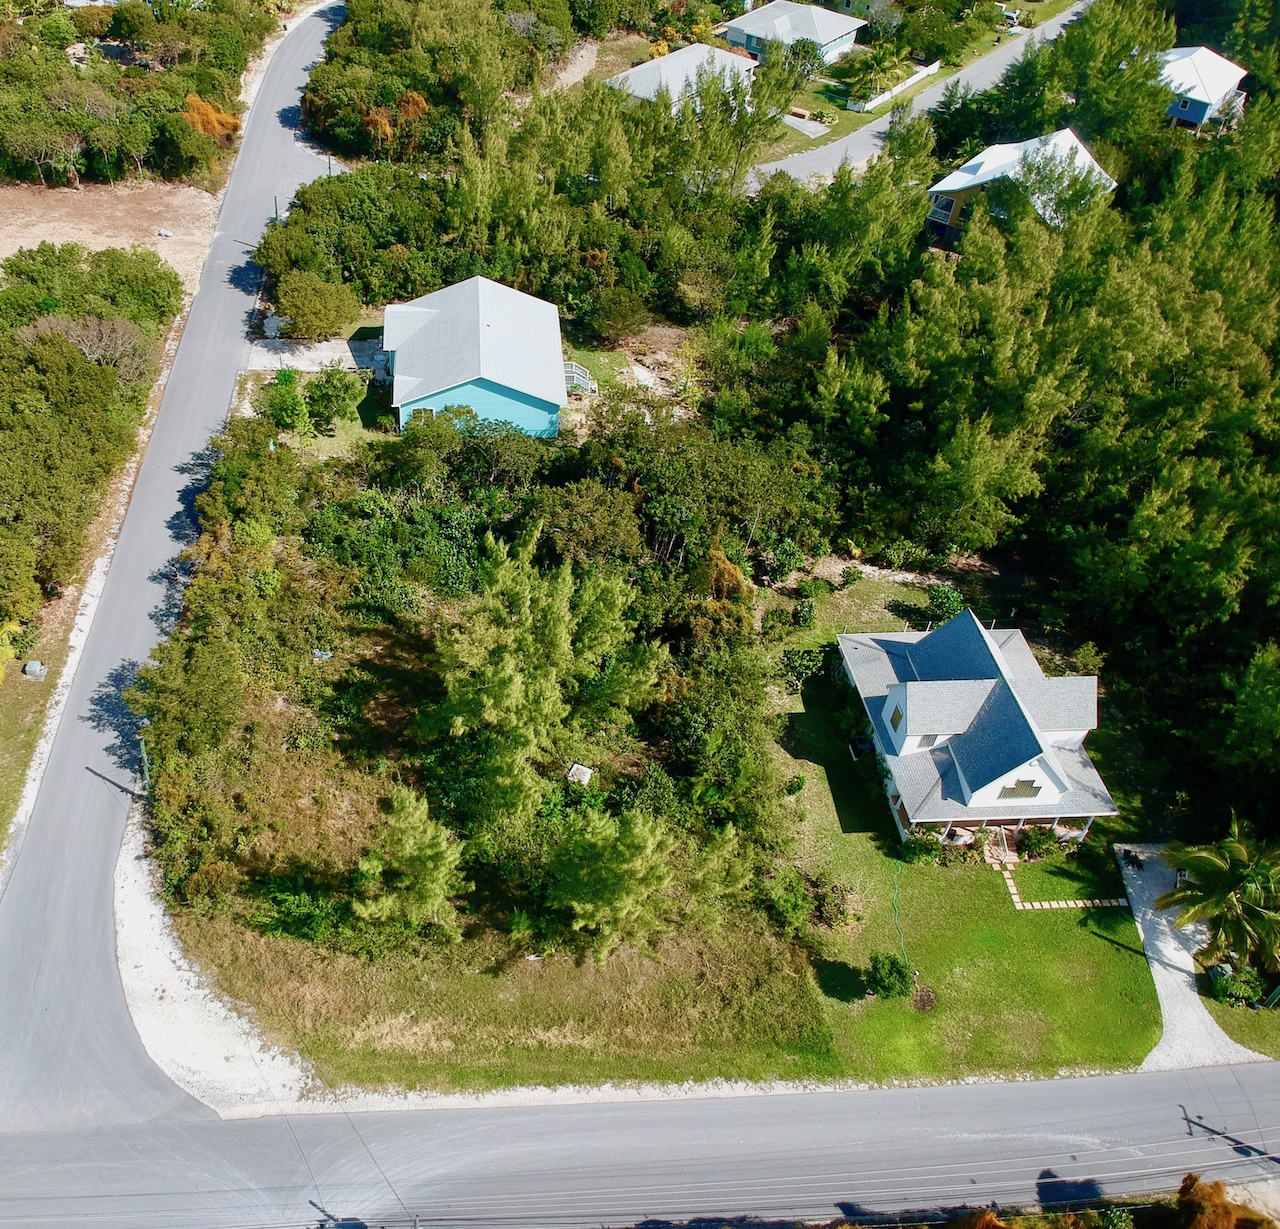 Property for sale in Green Turtle Cay